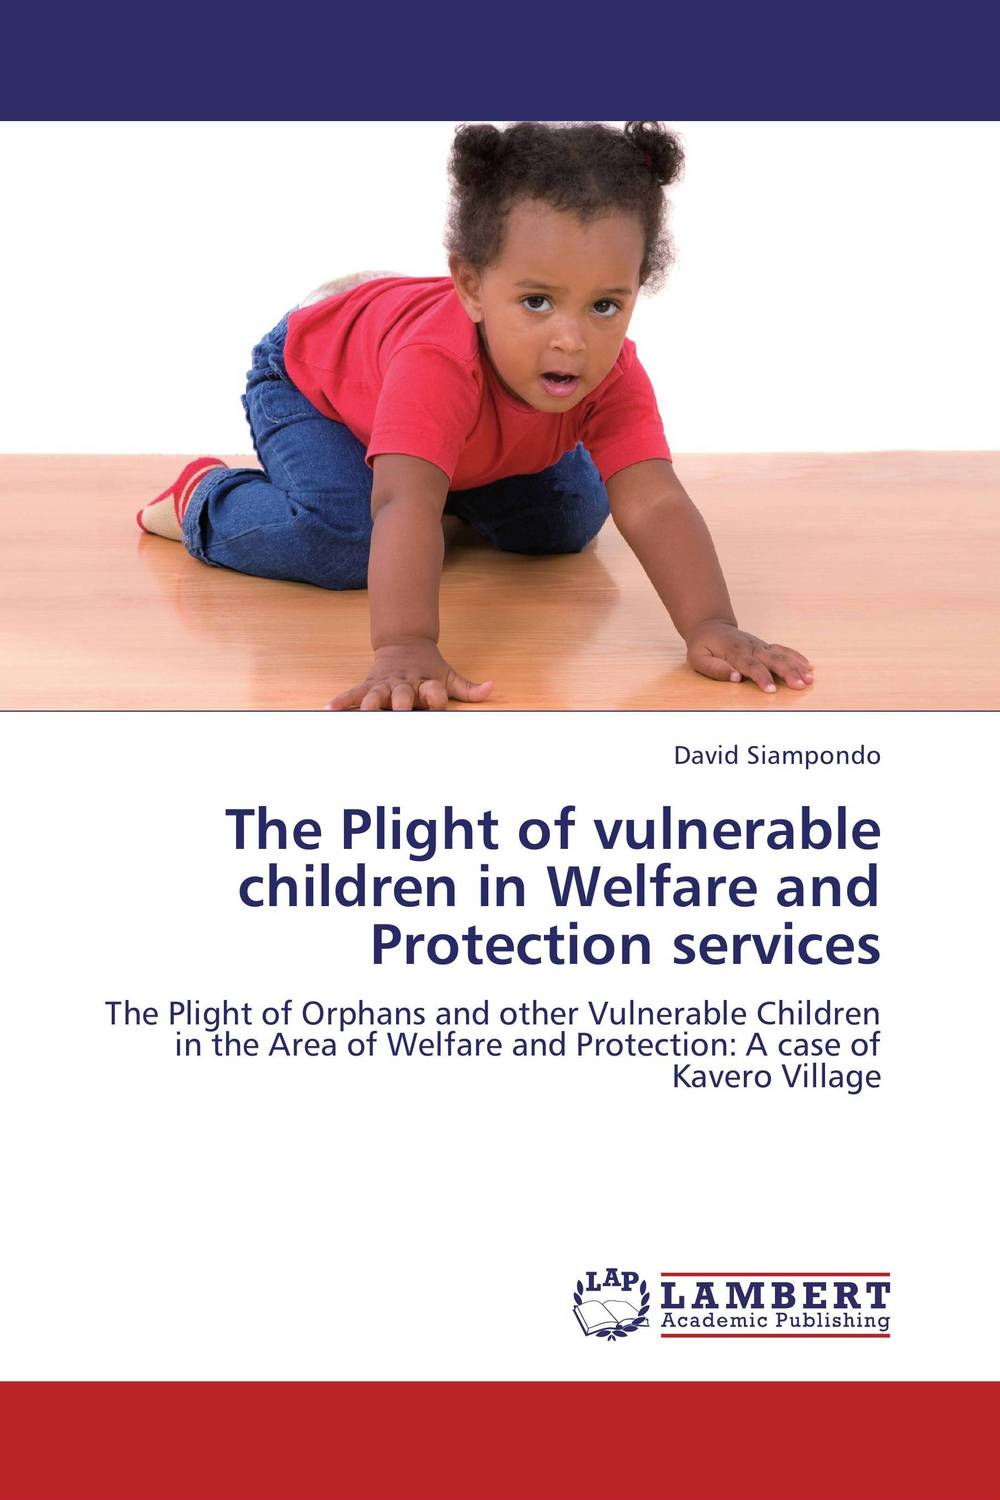 The Plight of vulnerable children in Welfare and Protection services the viabilities of musyarakah as social protection mechanism